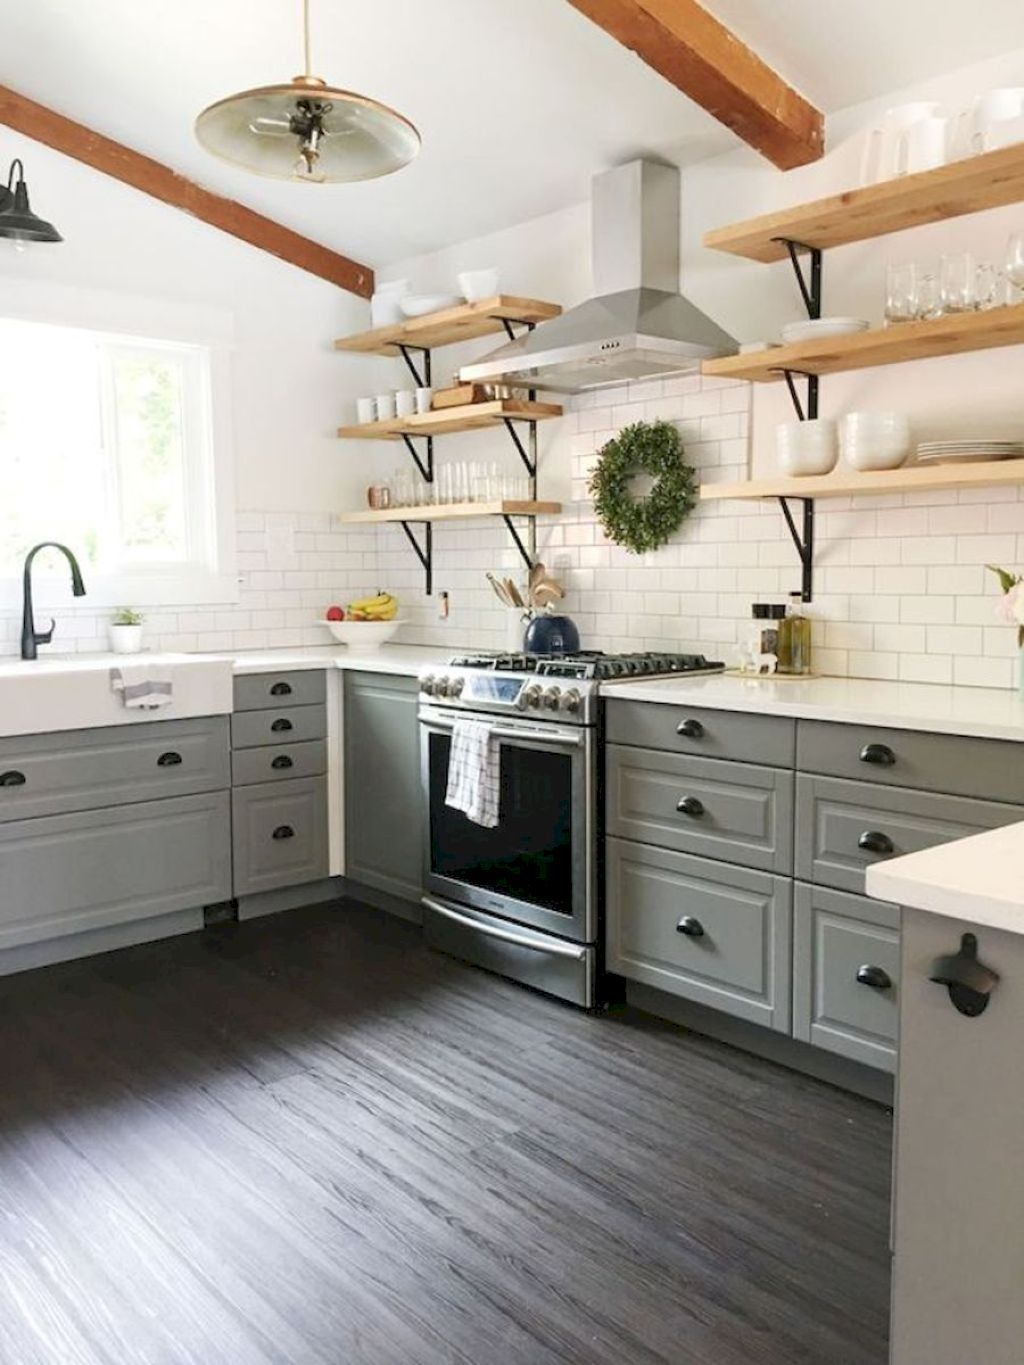 Awesome rustic farmhouse kitchen decor ideas homeylife